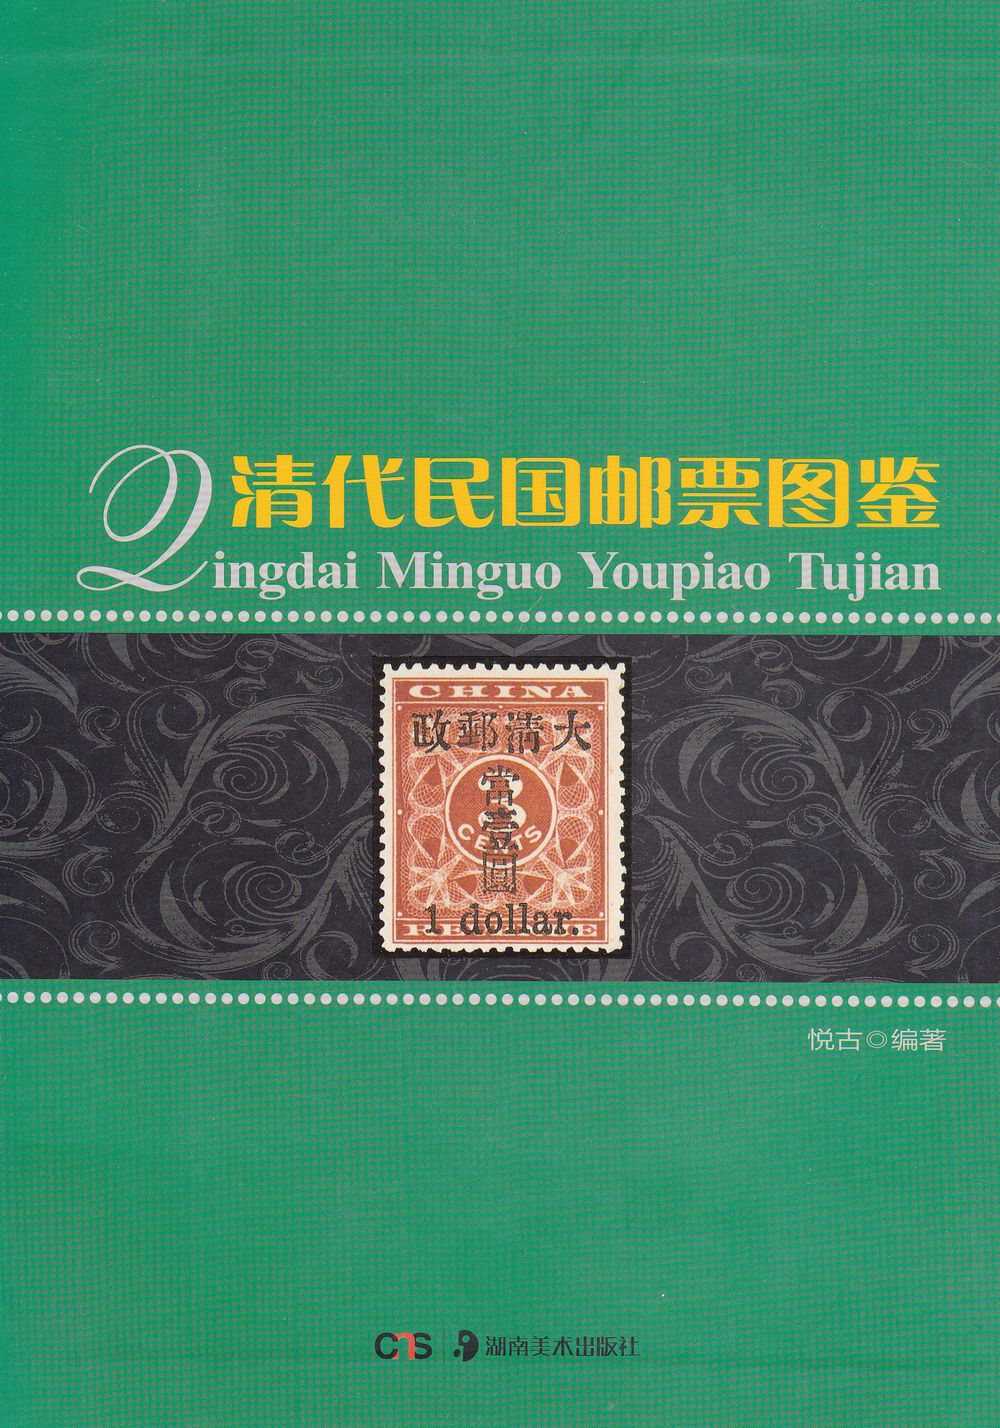 F2261, Stamps of Qing Dynasty and Republic of China (2012)